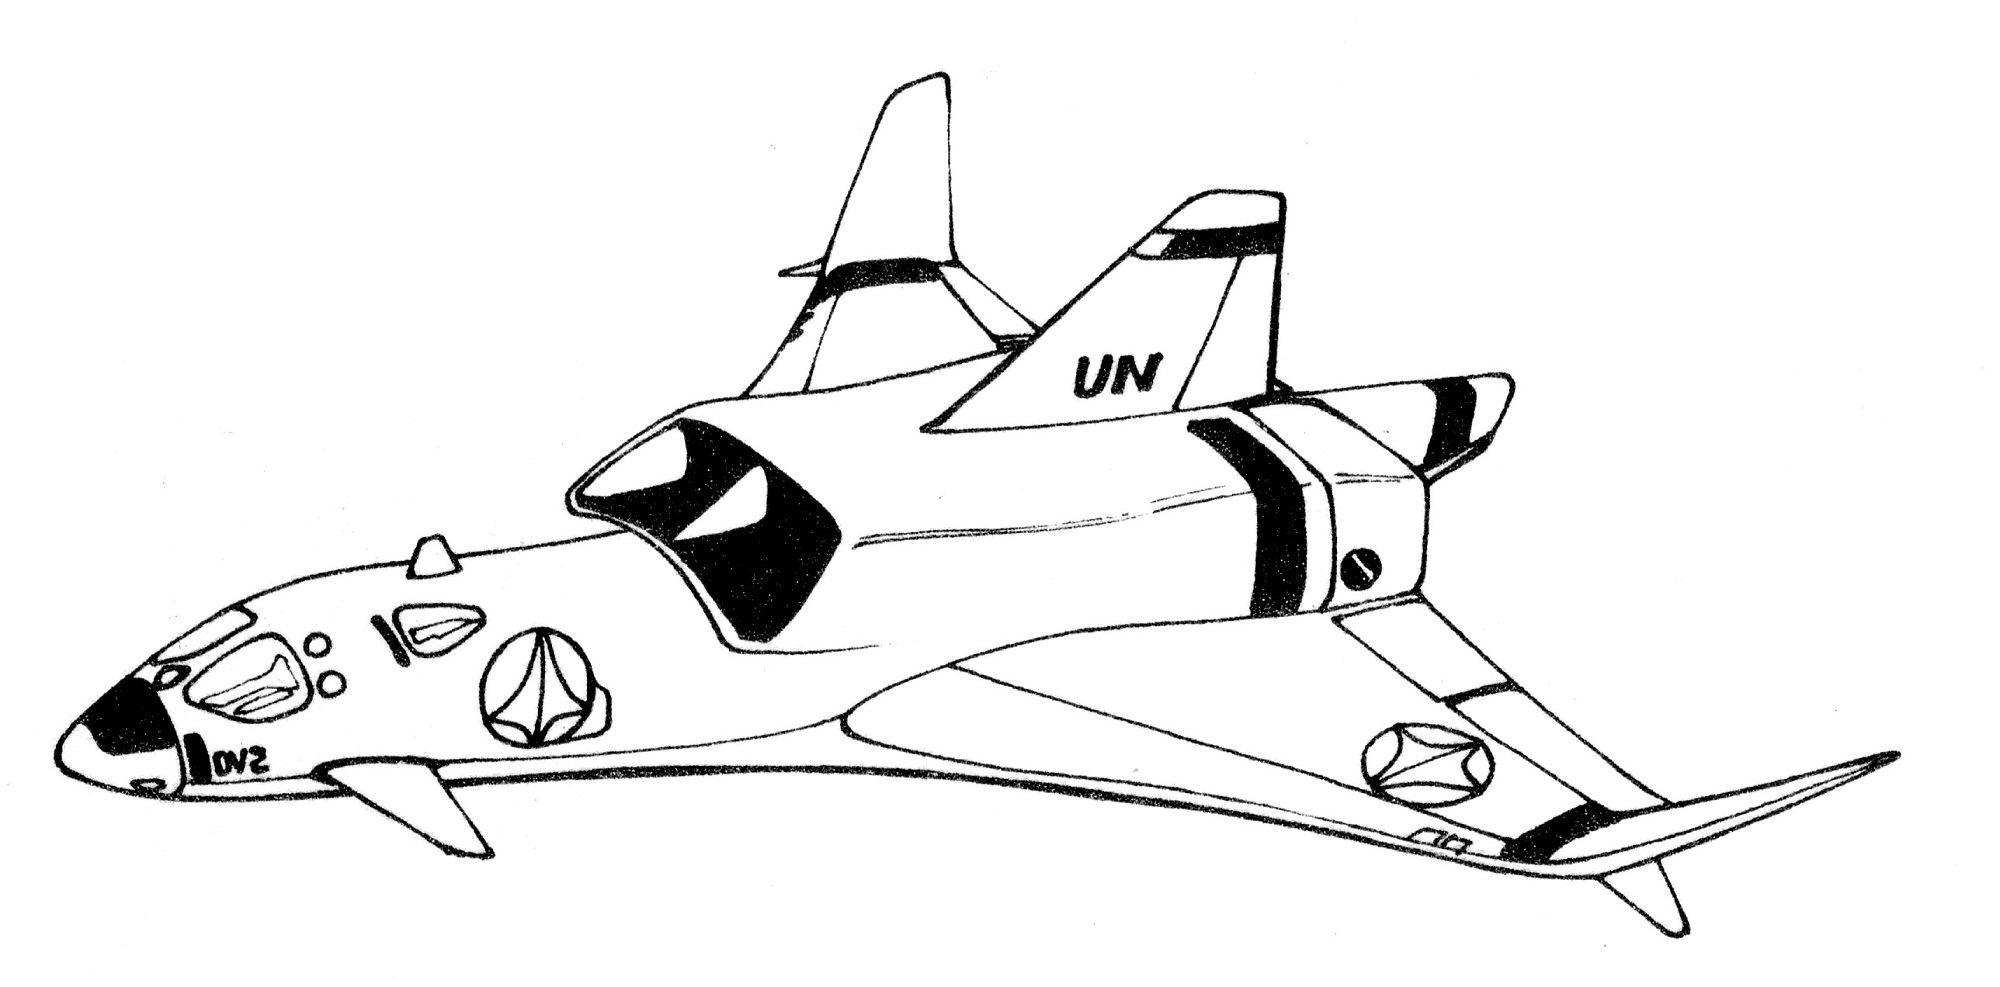 Rockwell International SC-27A Star Goose 1